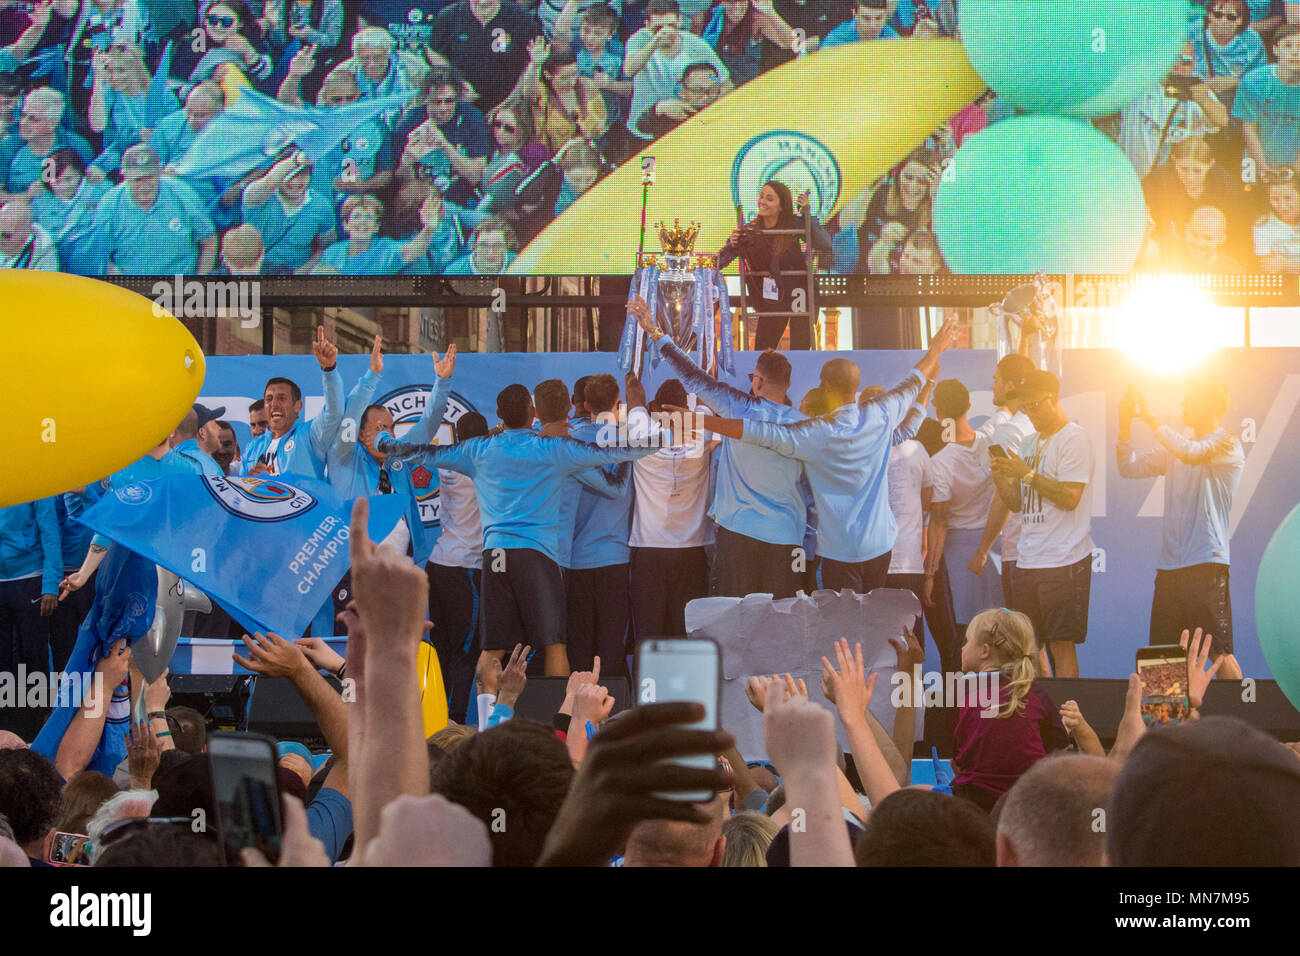 14 May 2018 - Manchester City football club celebrate their Premier League victory in a parade through Manchester. Manchester based band Blossoms also performed for fans. - Stock Image